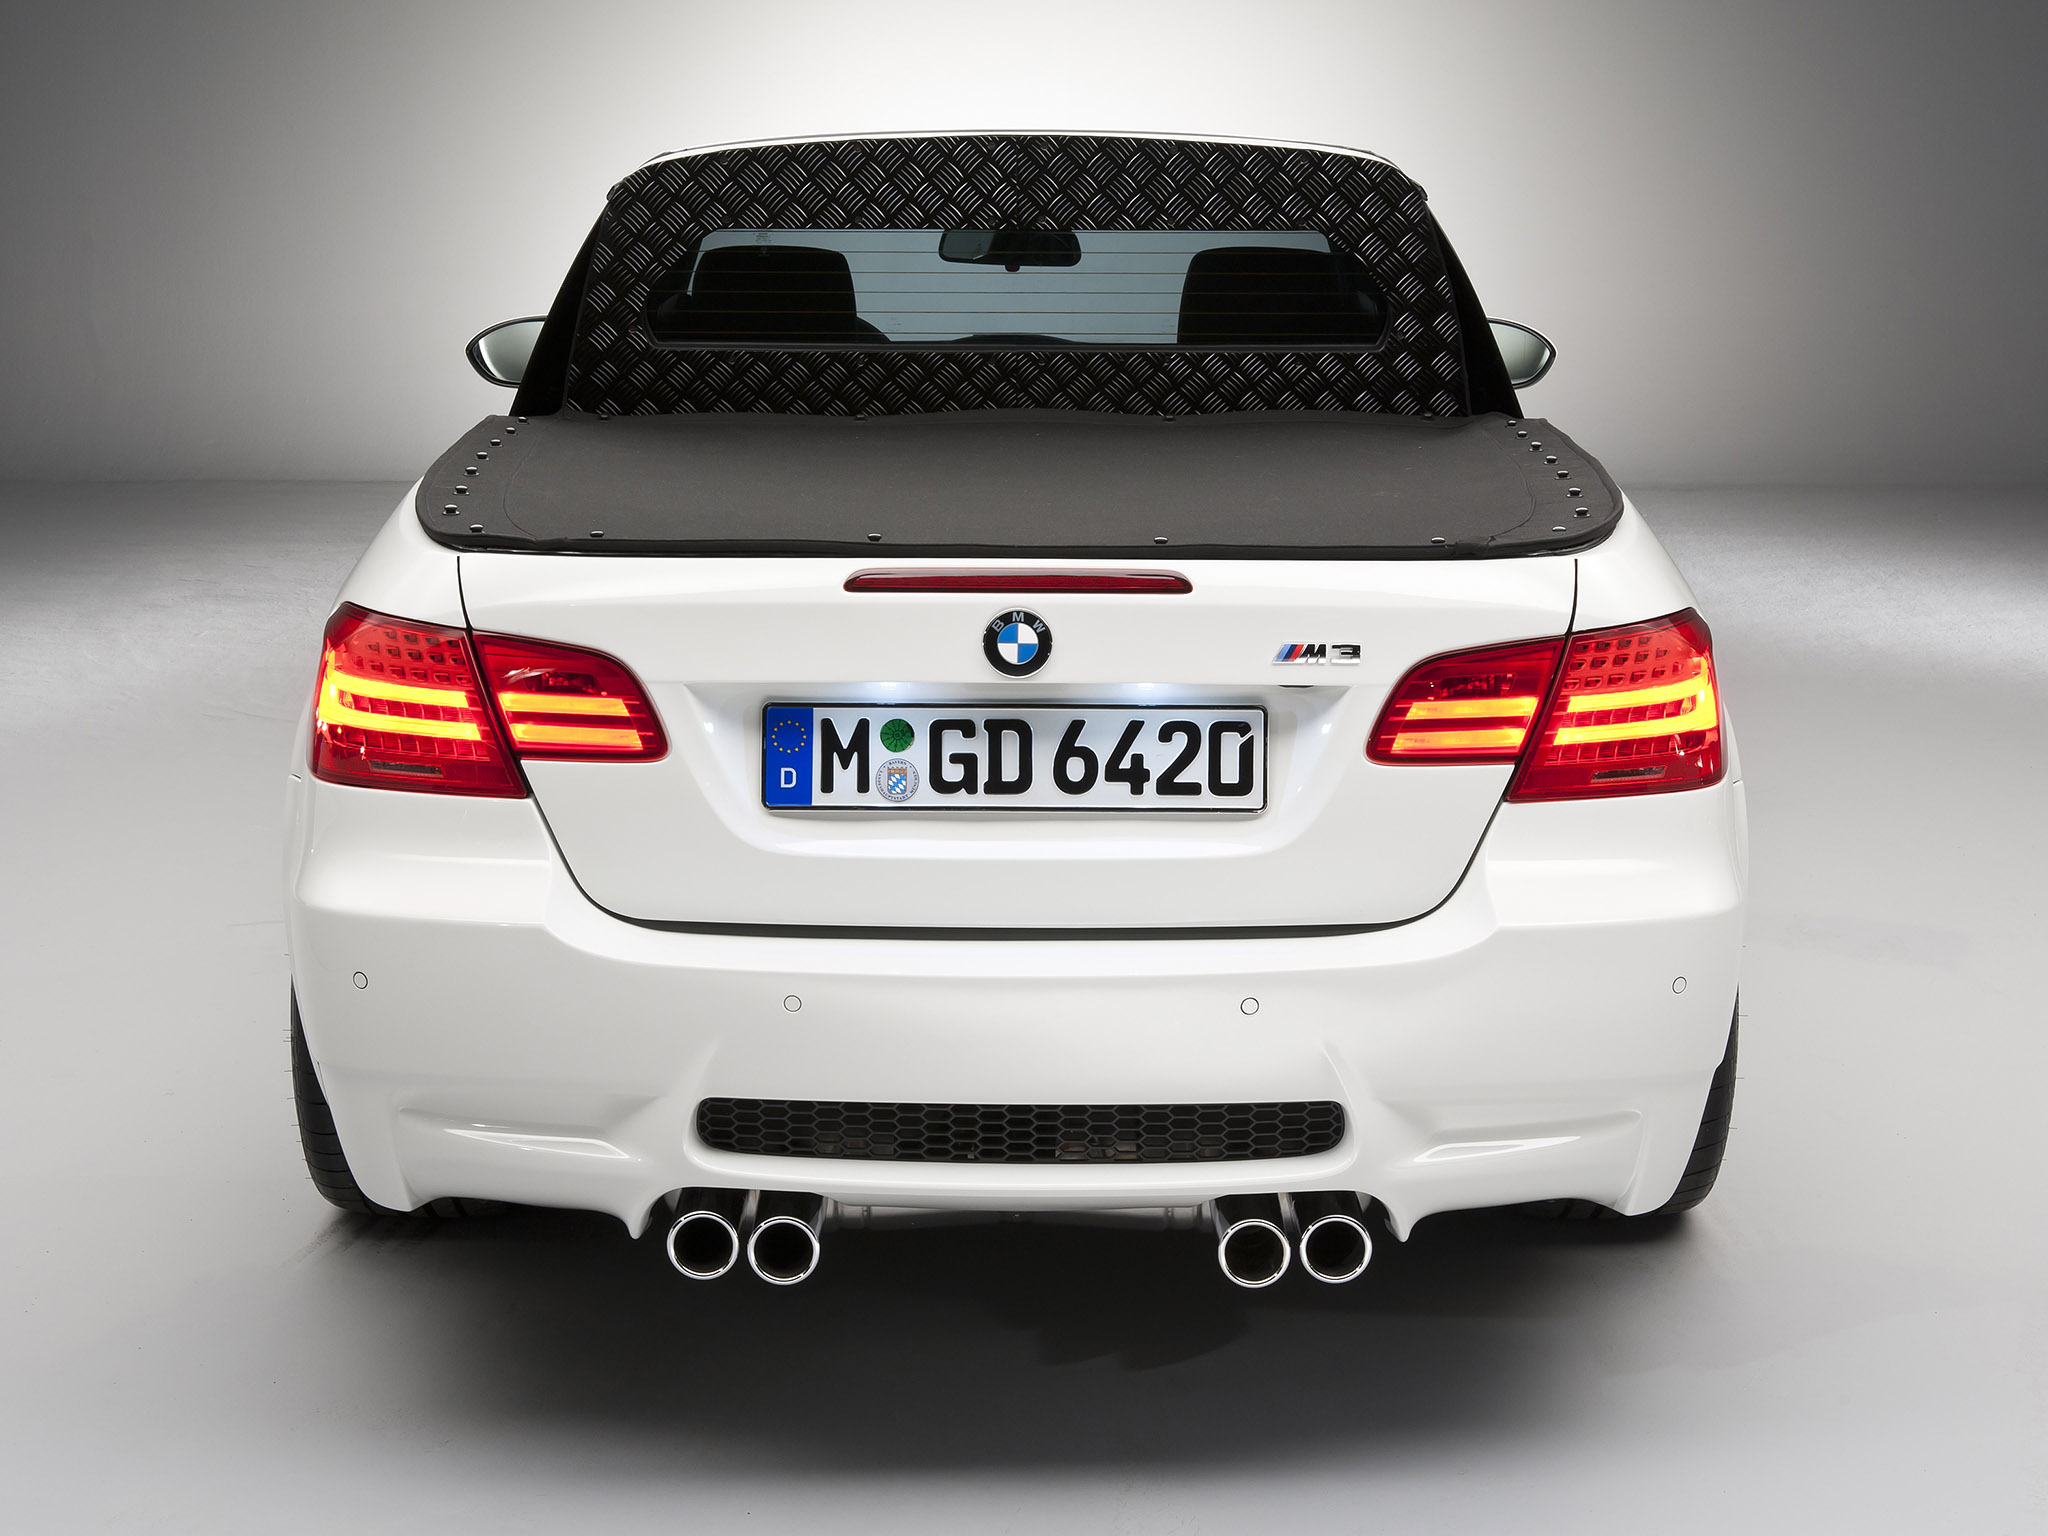 Car in pictures - car photo gallery » BMW M3 Pick-up 1st ...